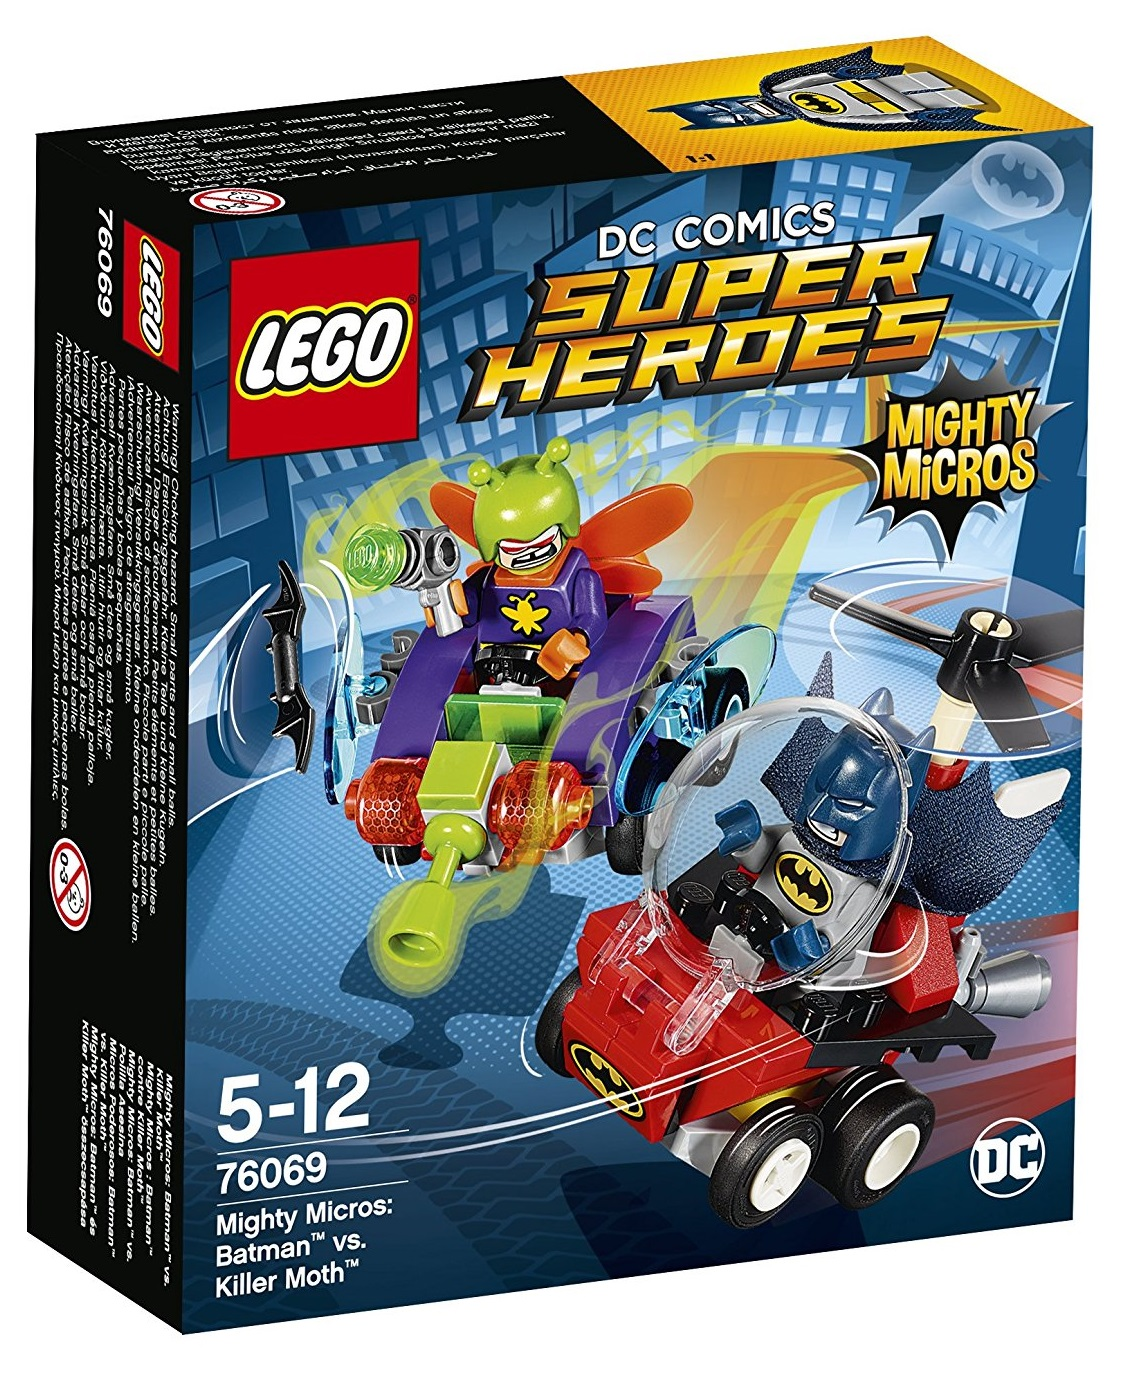 Lego Mighty Micros Batman VS Killer moth